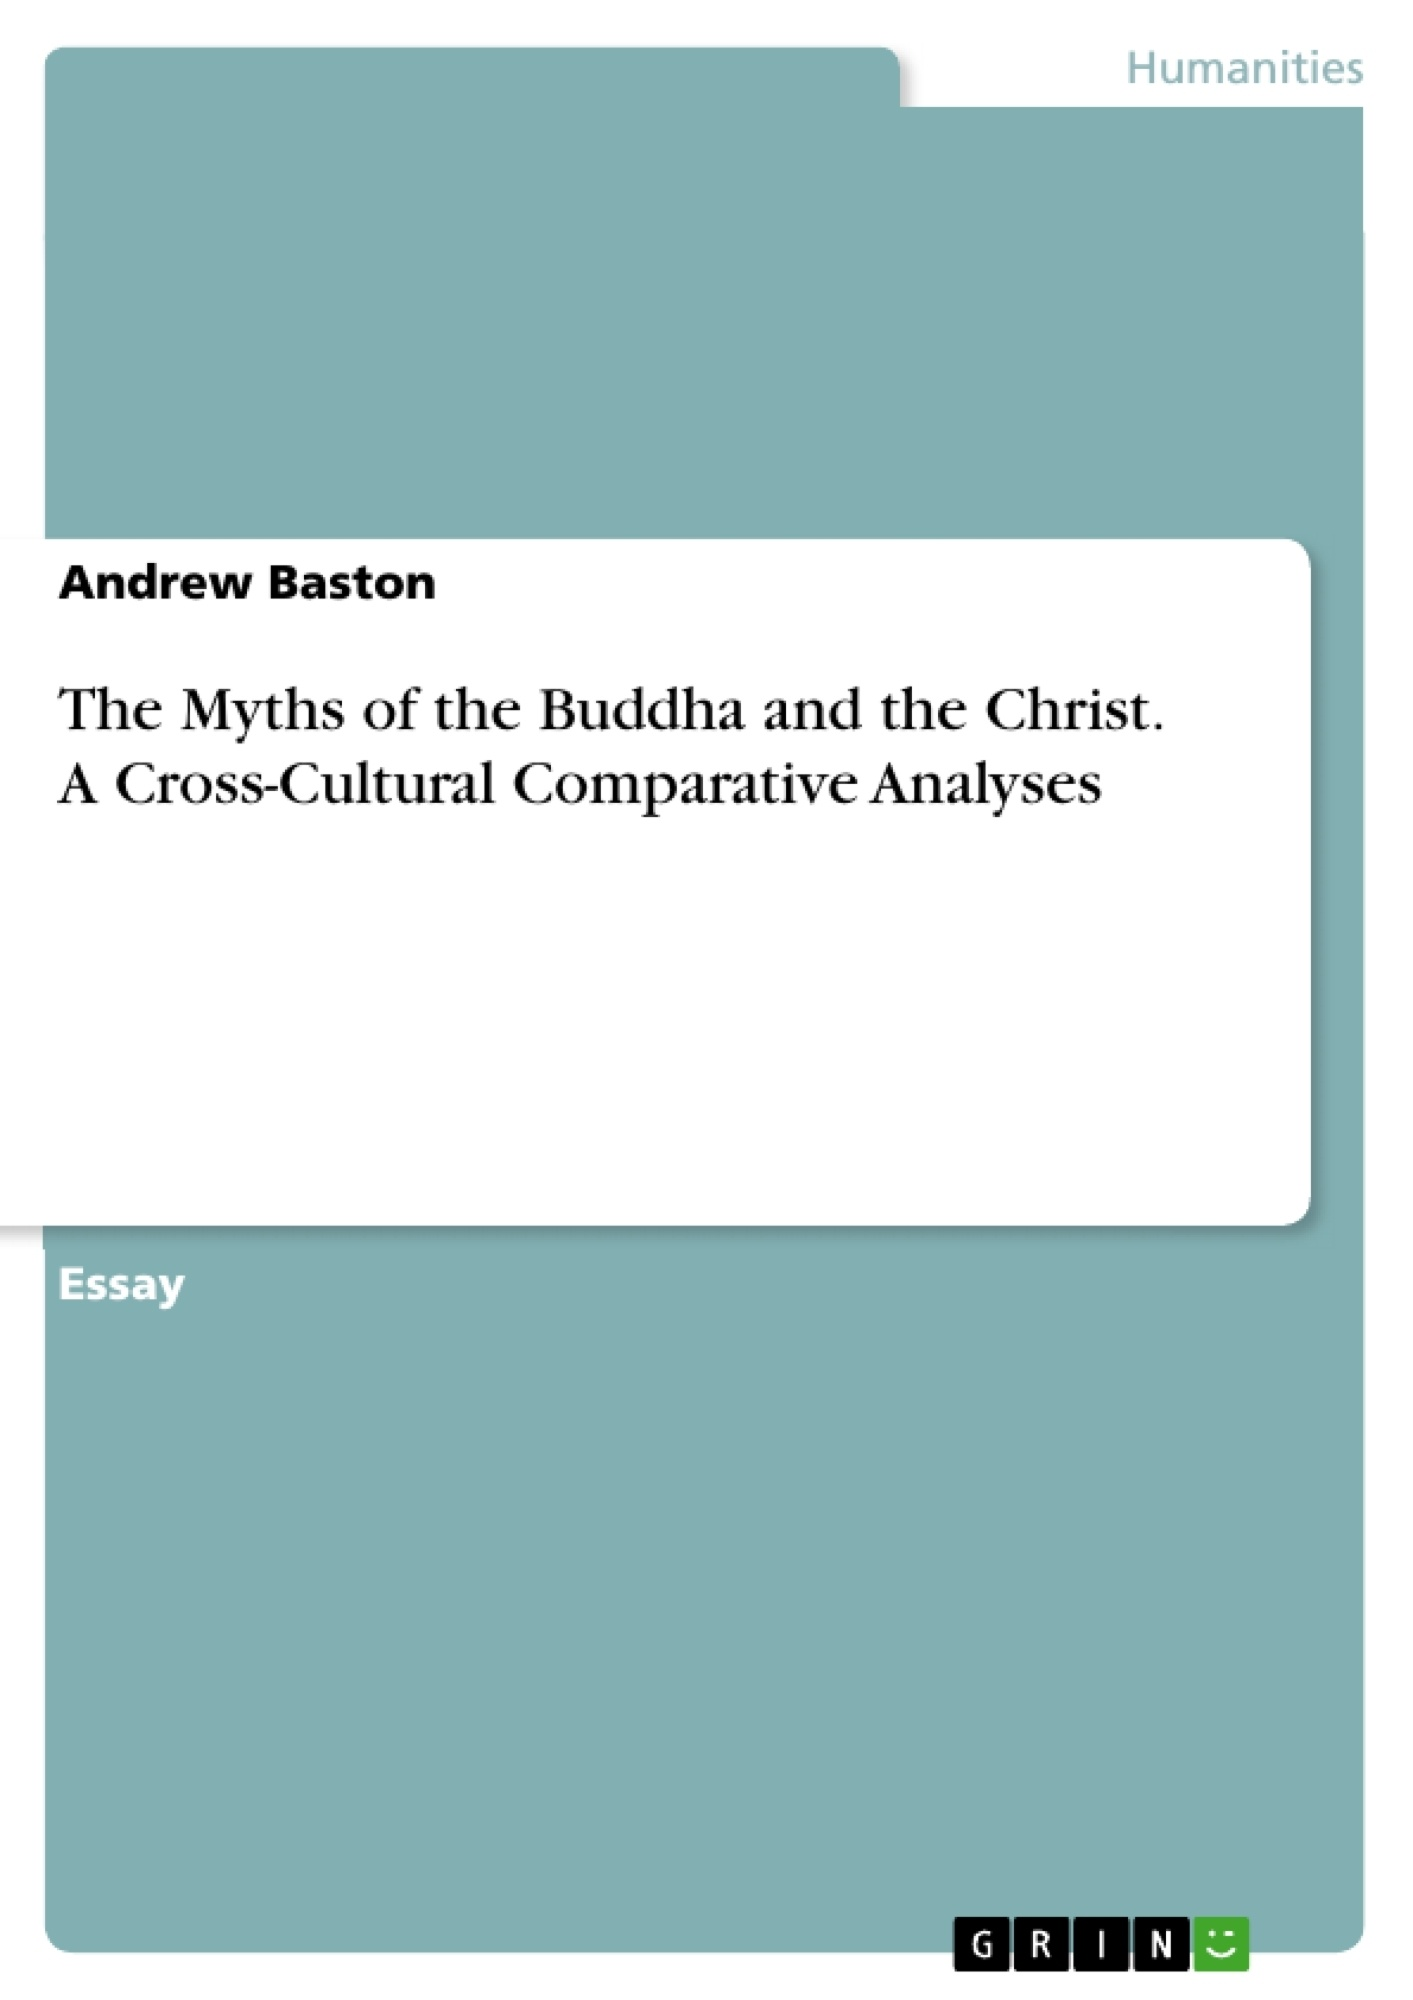 Title: The Myths of the Buddha and the Christ. A Cross-Cultural Comparative Analyses